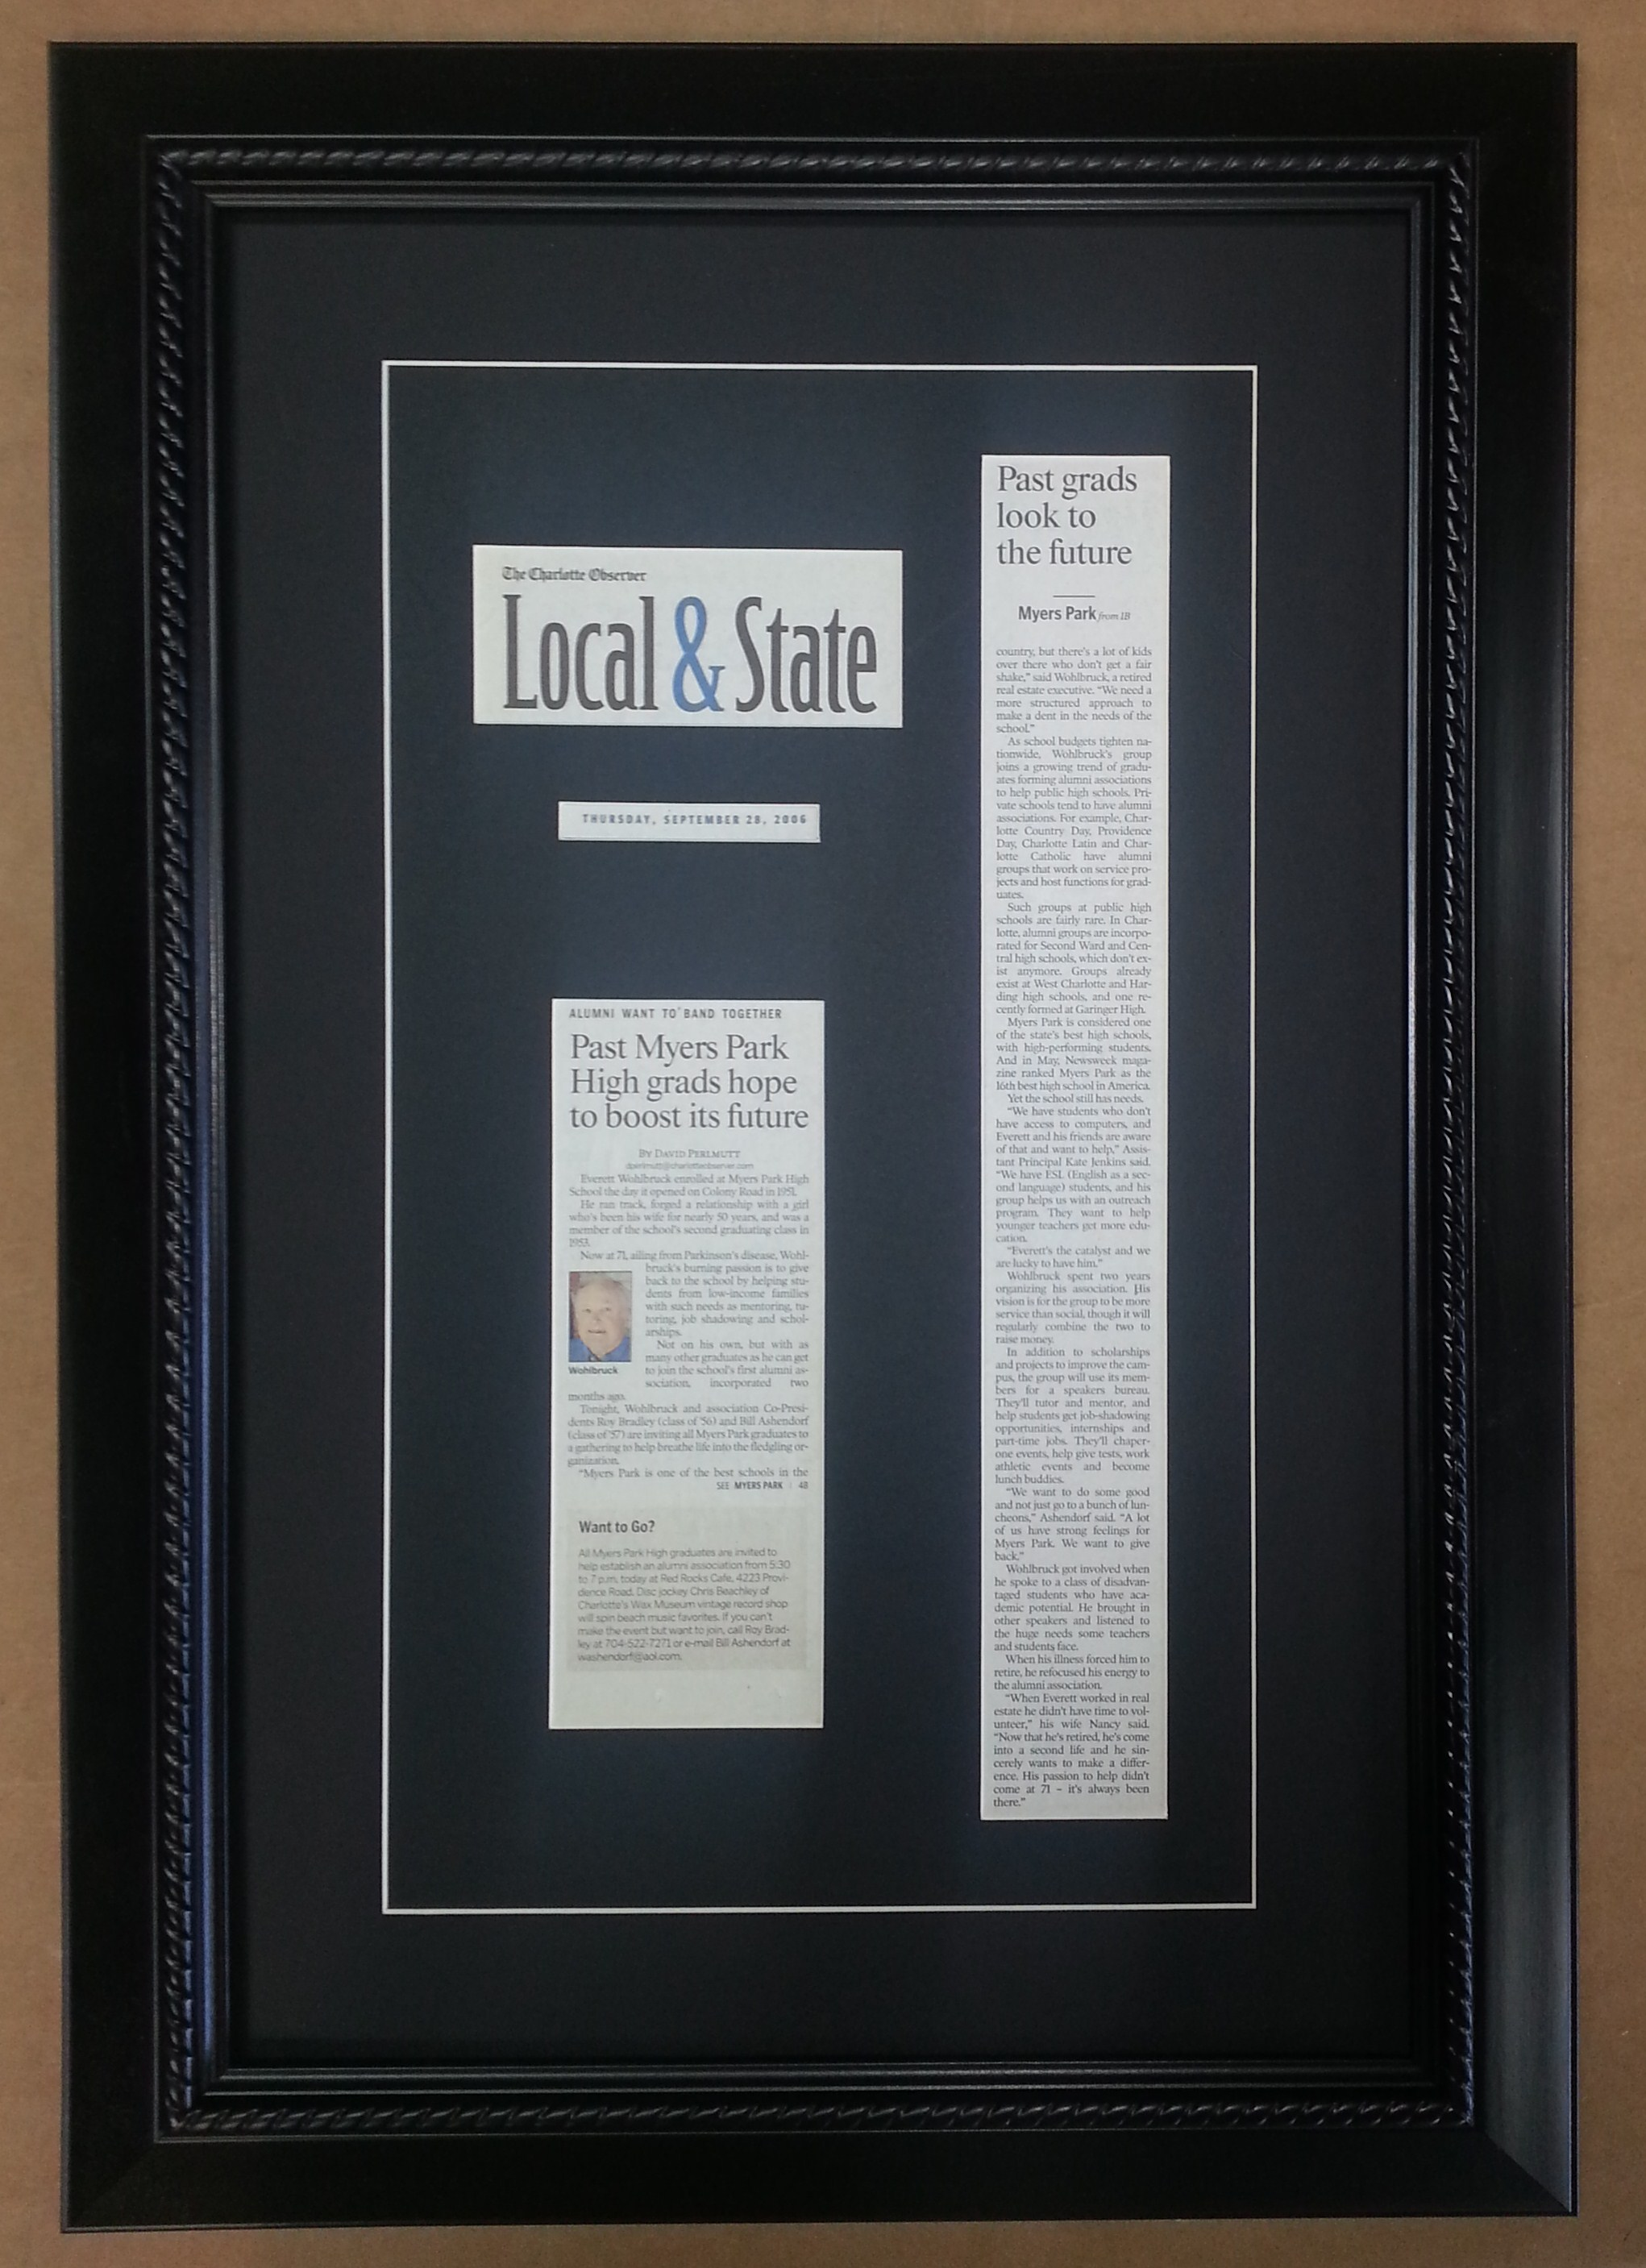 framing a newspaper helps preserve articles forever